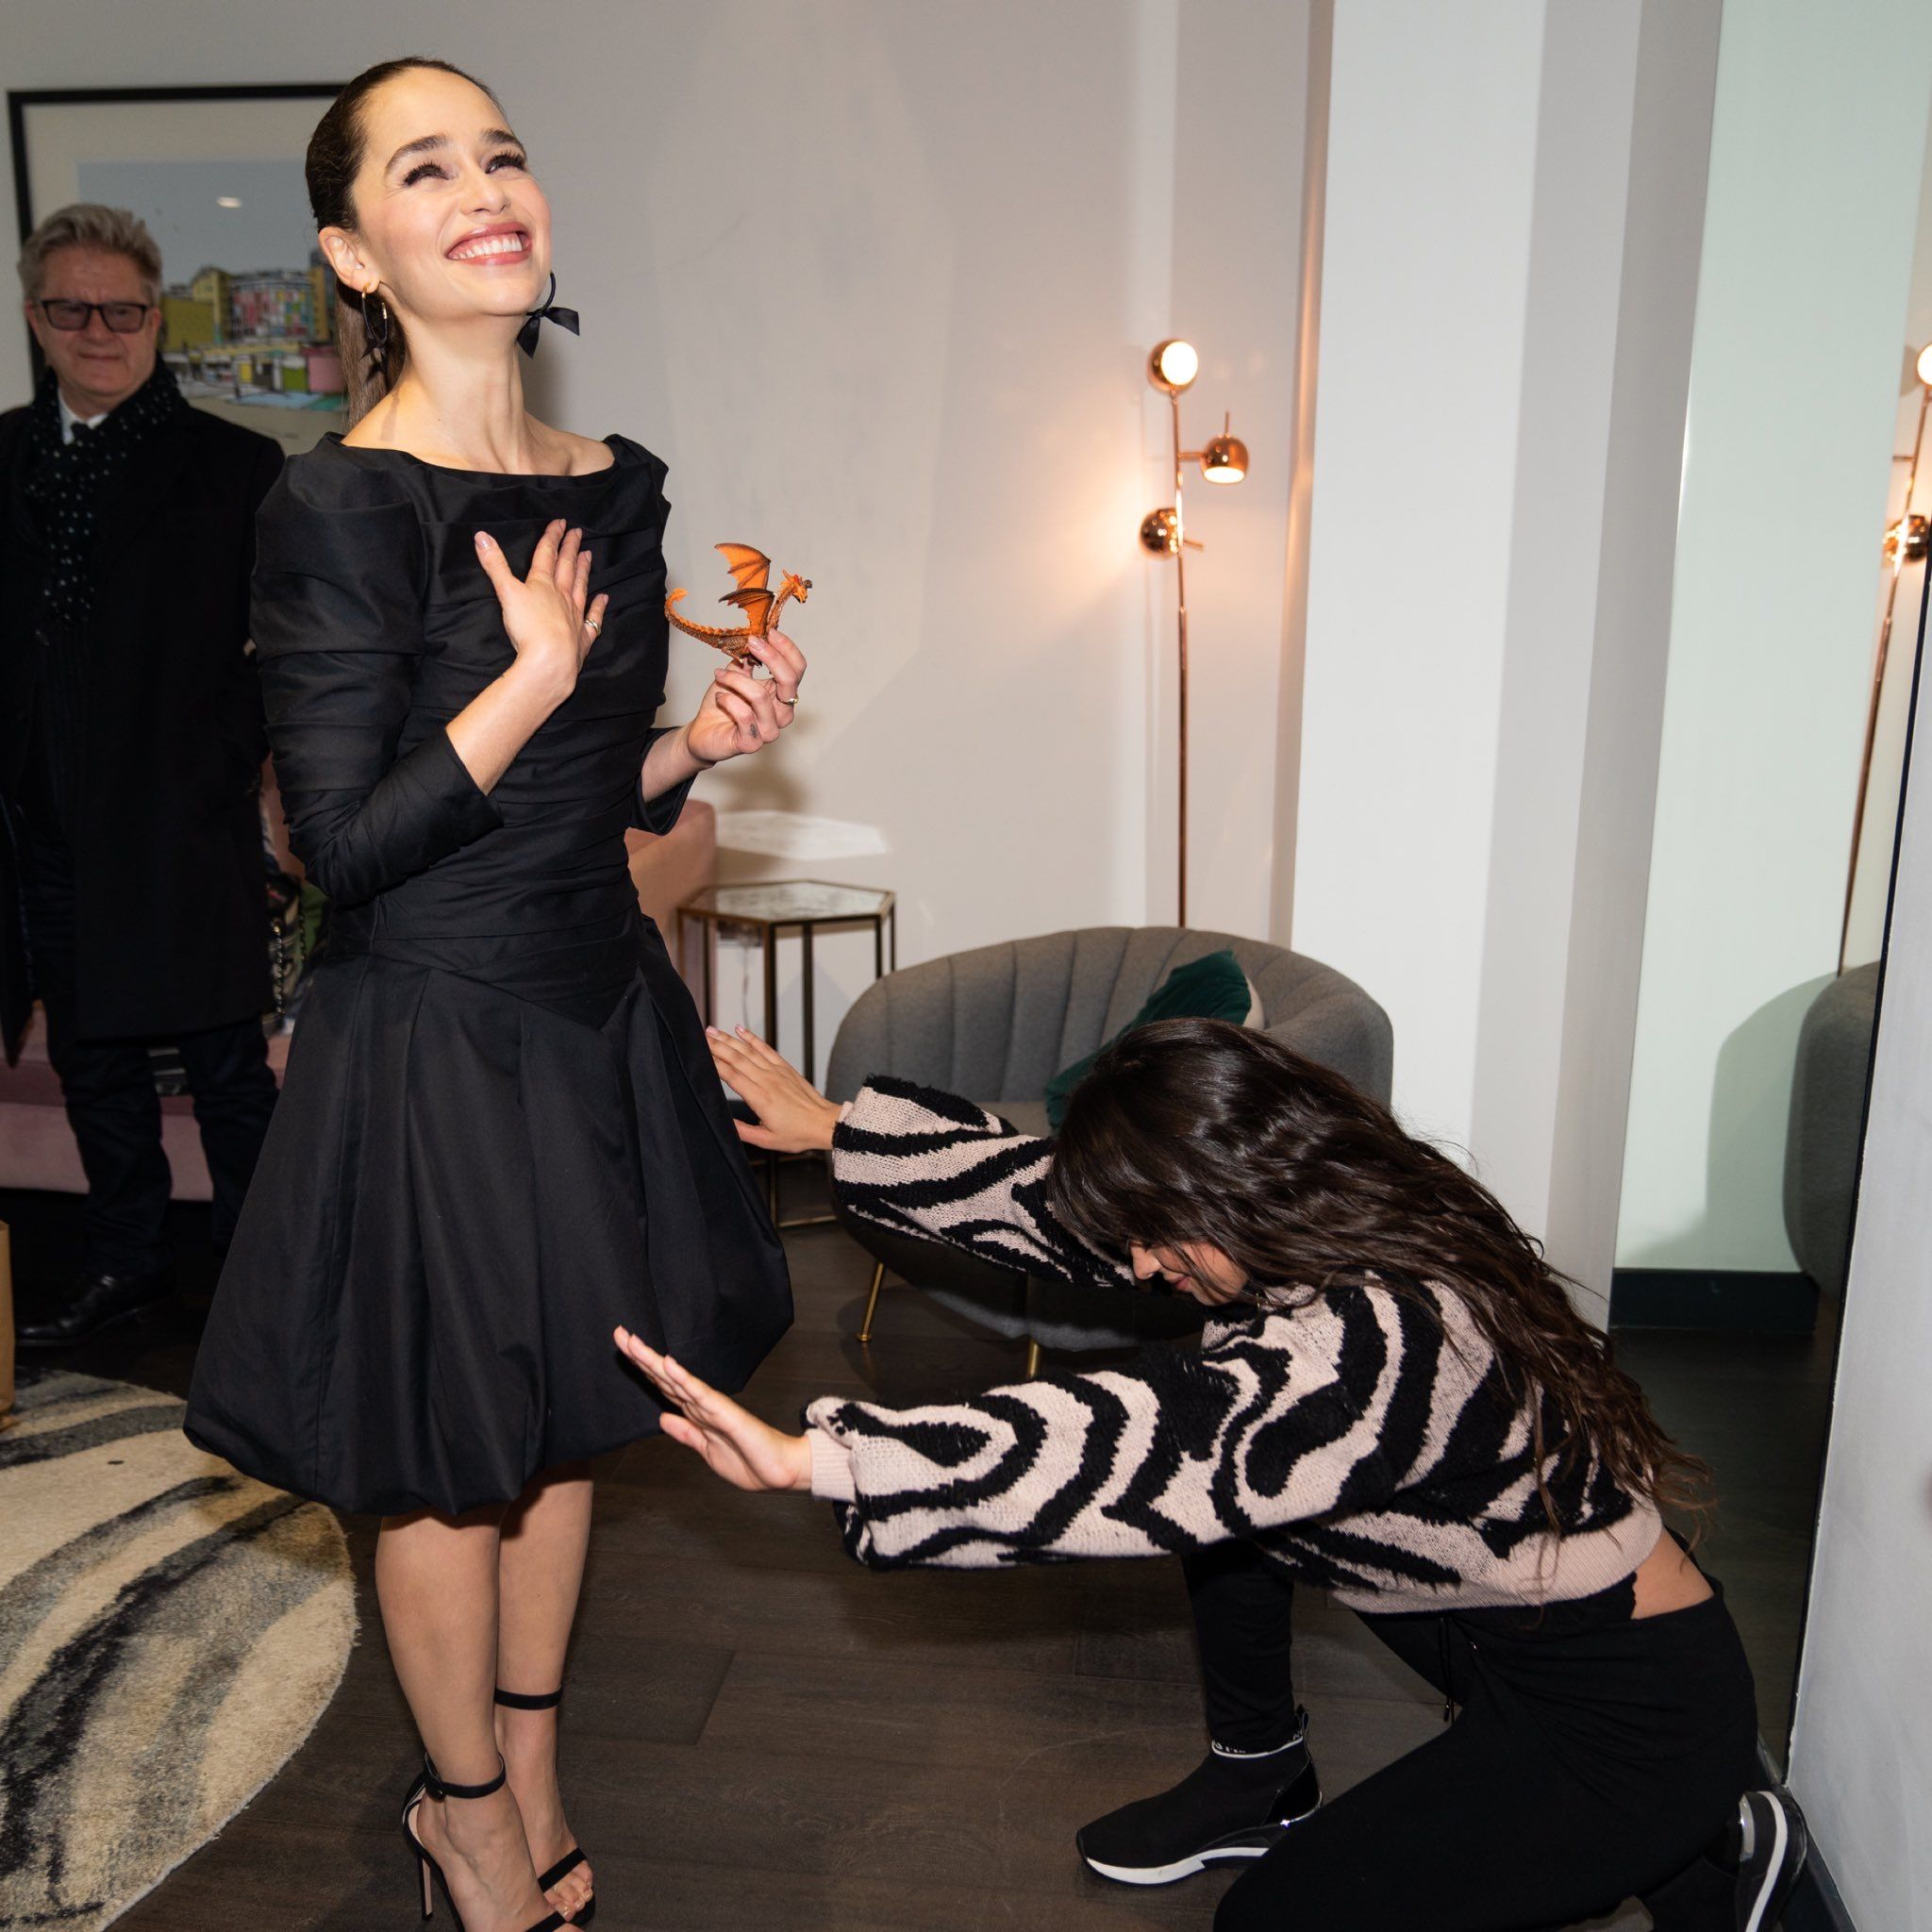 Pin By Rachelle Cabrera On Game Of Thrones Emilia Clarke Style Little Black Dress Fashion